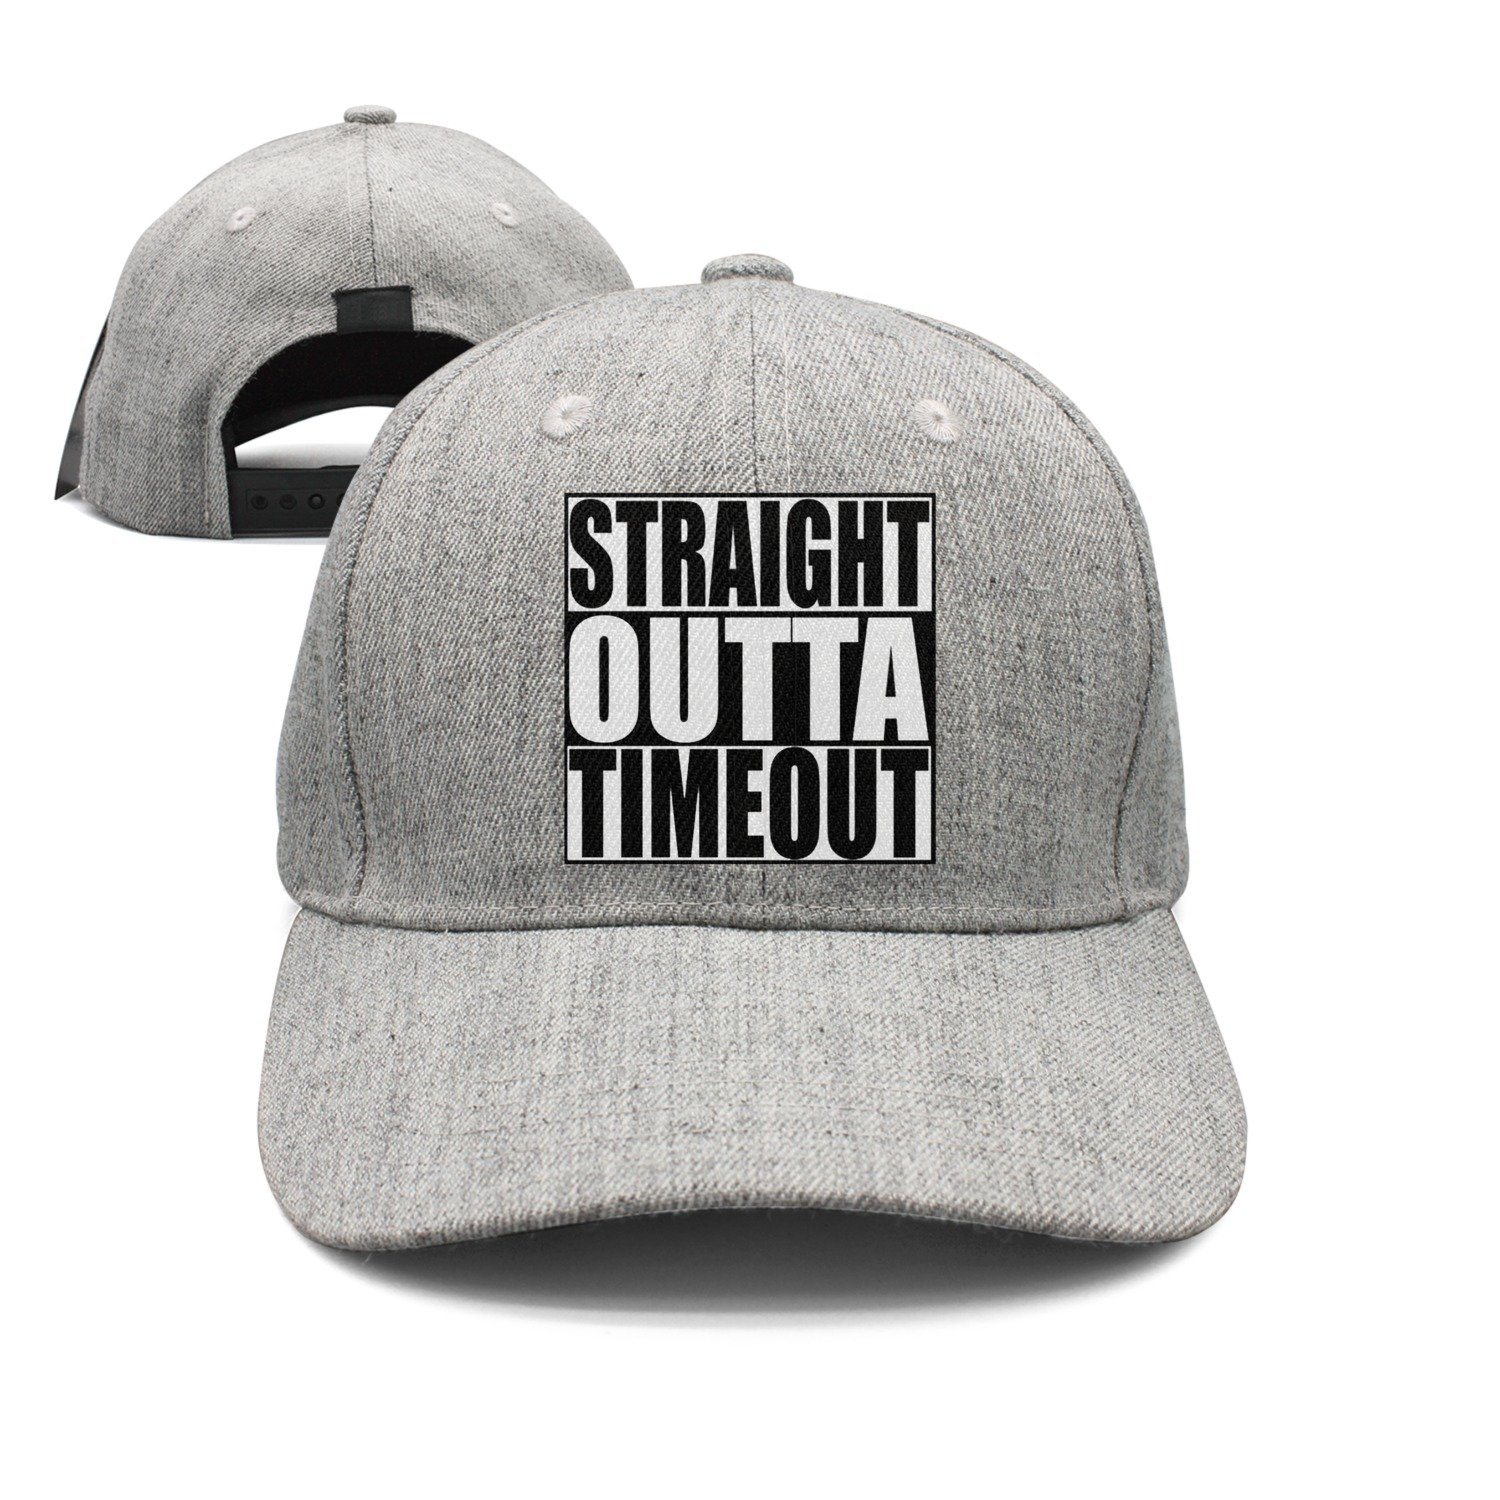 Waldeal Boys& Girls Straight Outta Timeout Two-Toned Baseball Cap Hats Black